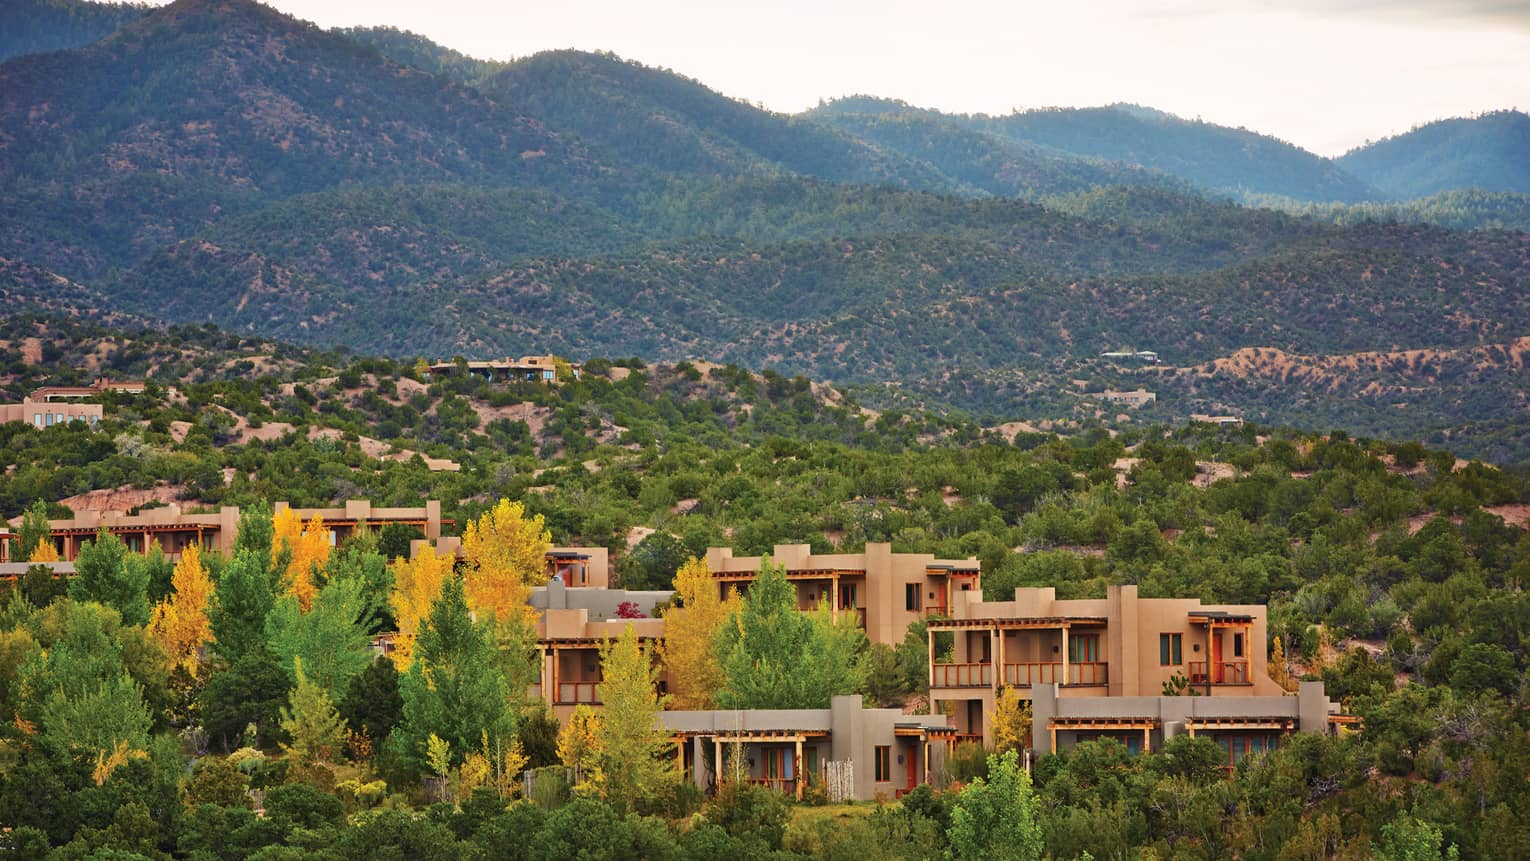 Aerial view of Four Seasons Resort Santa Fe in desert mountains